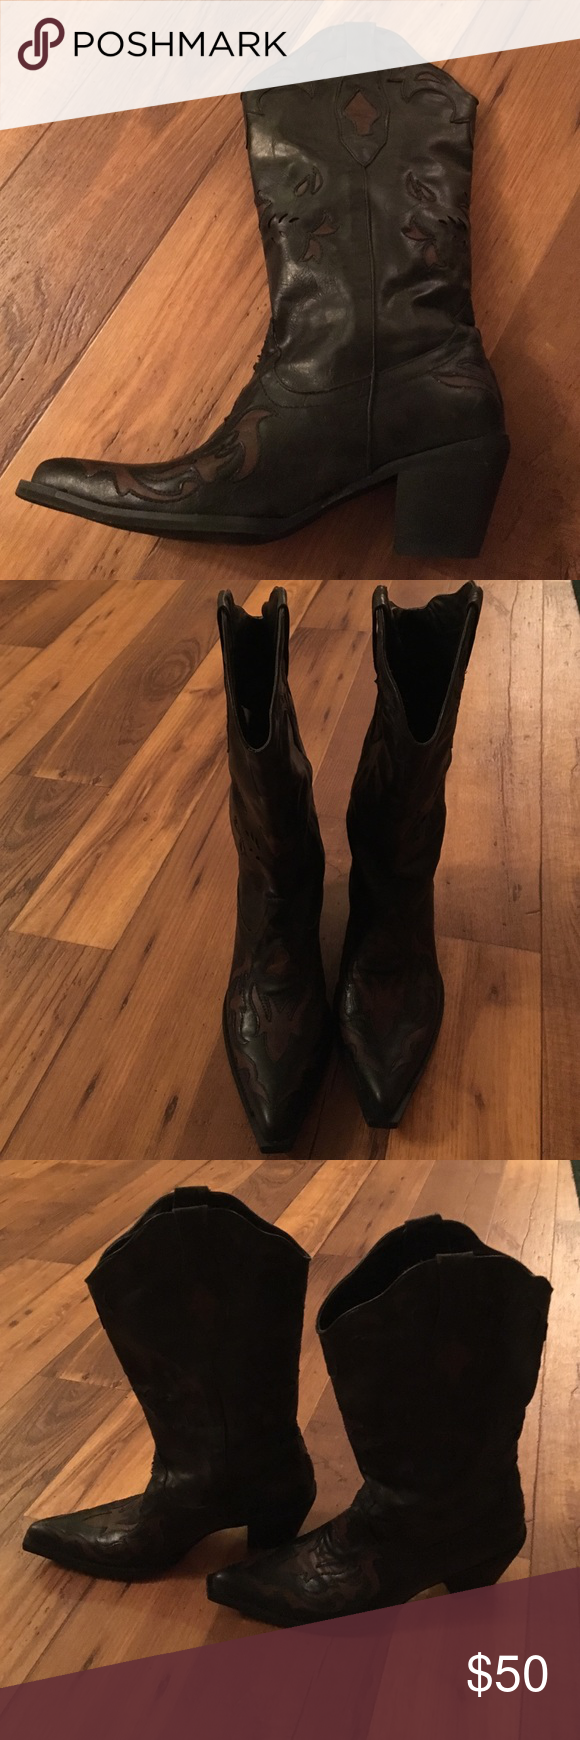 🐴COWBOY BOOTS🐴 These are lovely cowboy (or cowgirl😉) boots that are so stylish! Black with reddish-brown designs! Only worn a couple times, in perfect shape! Roper Shoes Heeled Boots